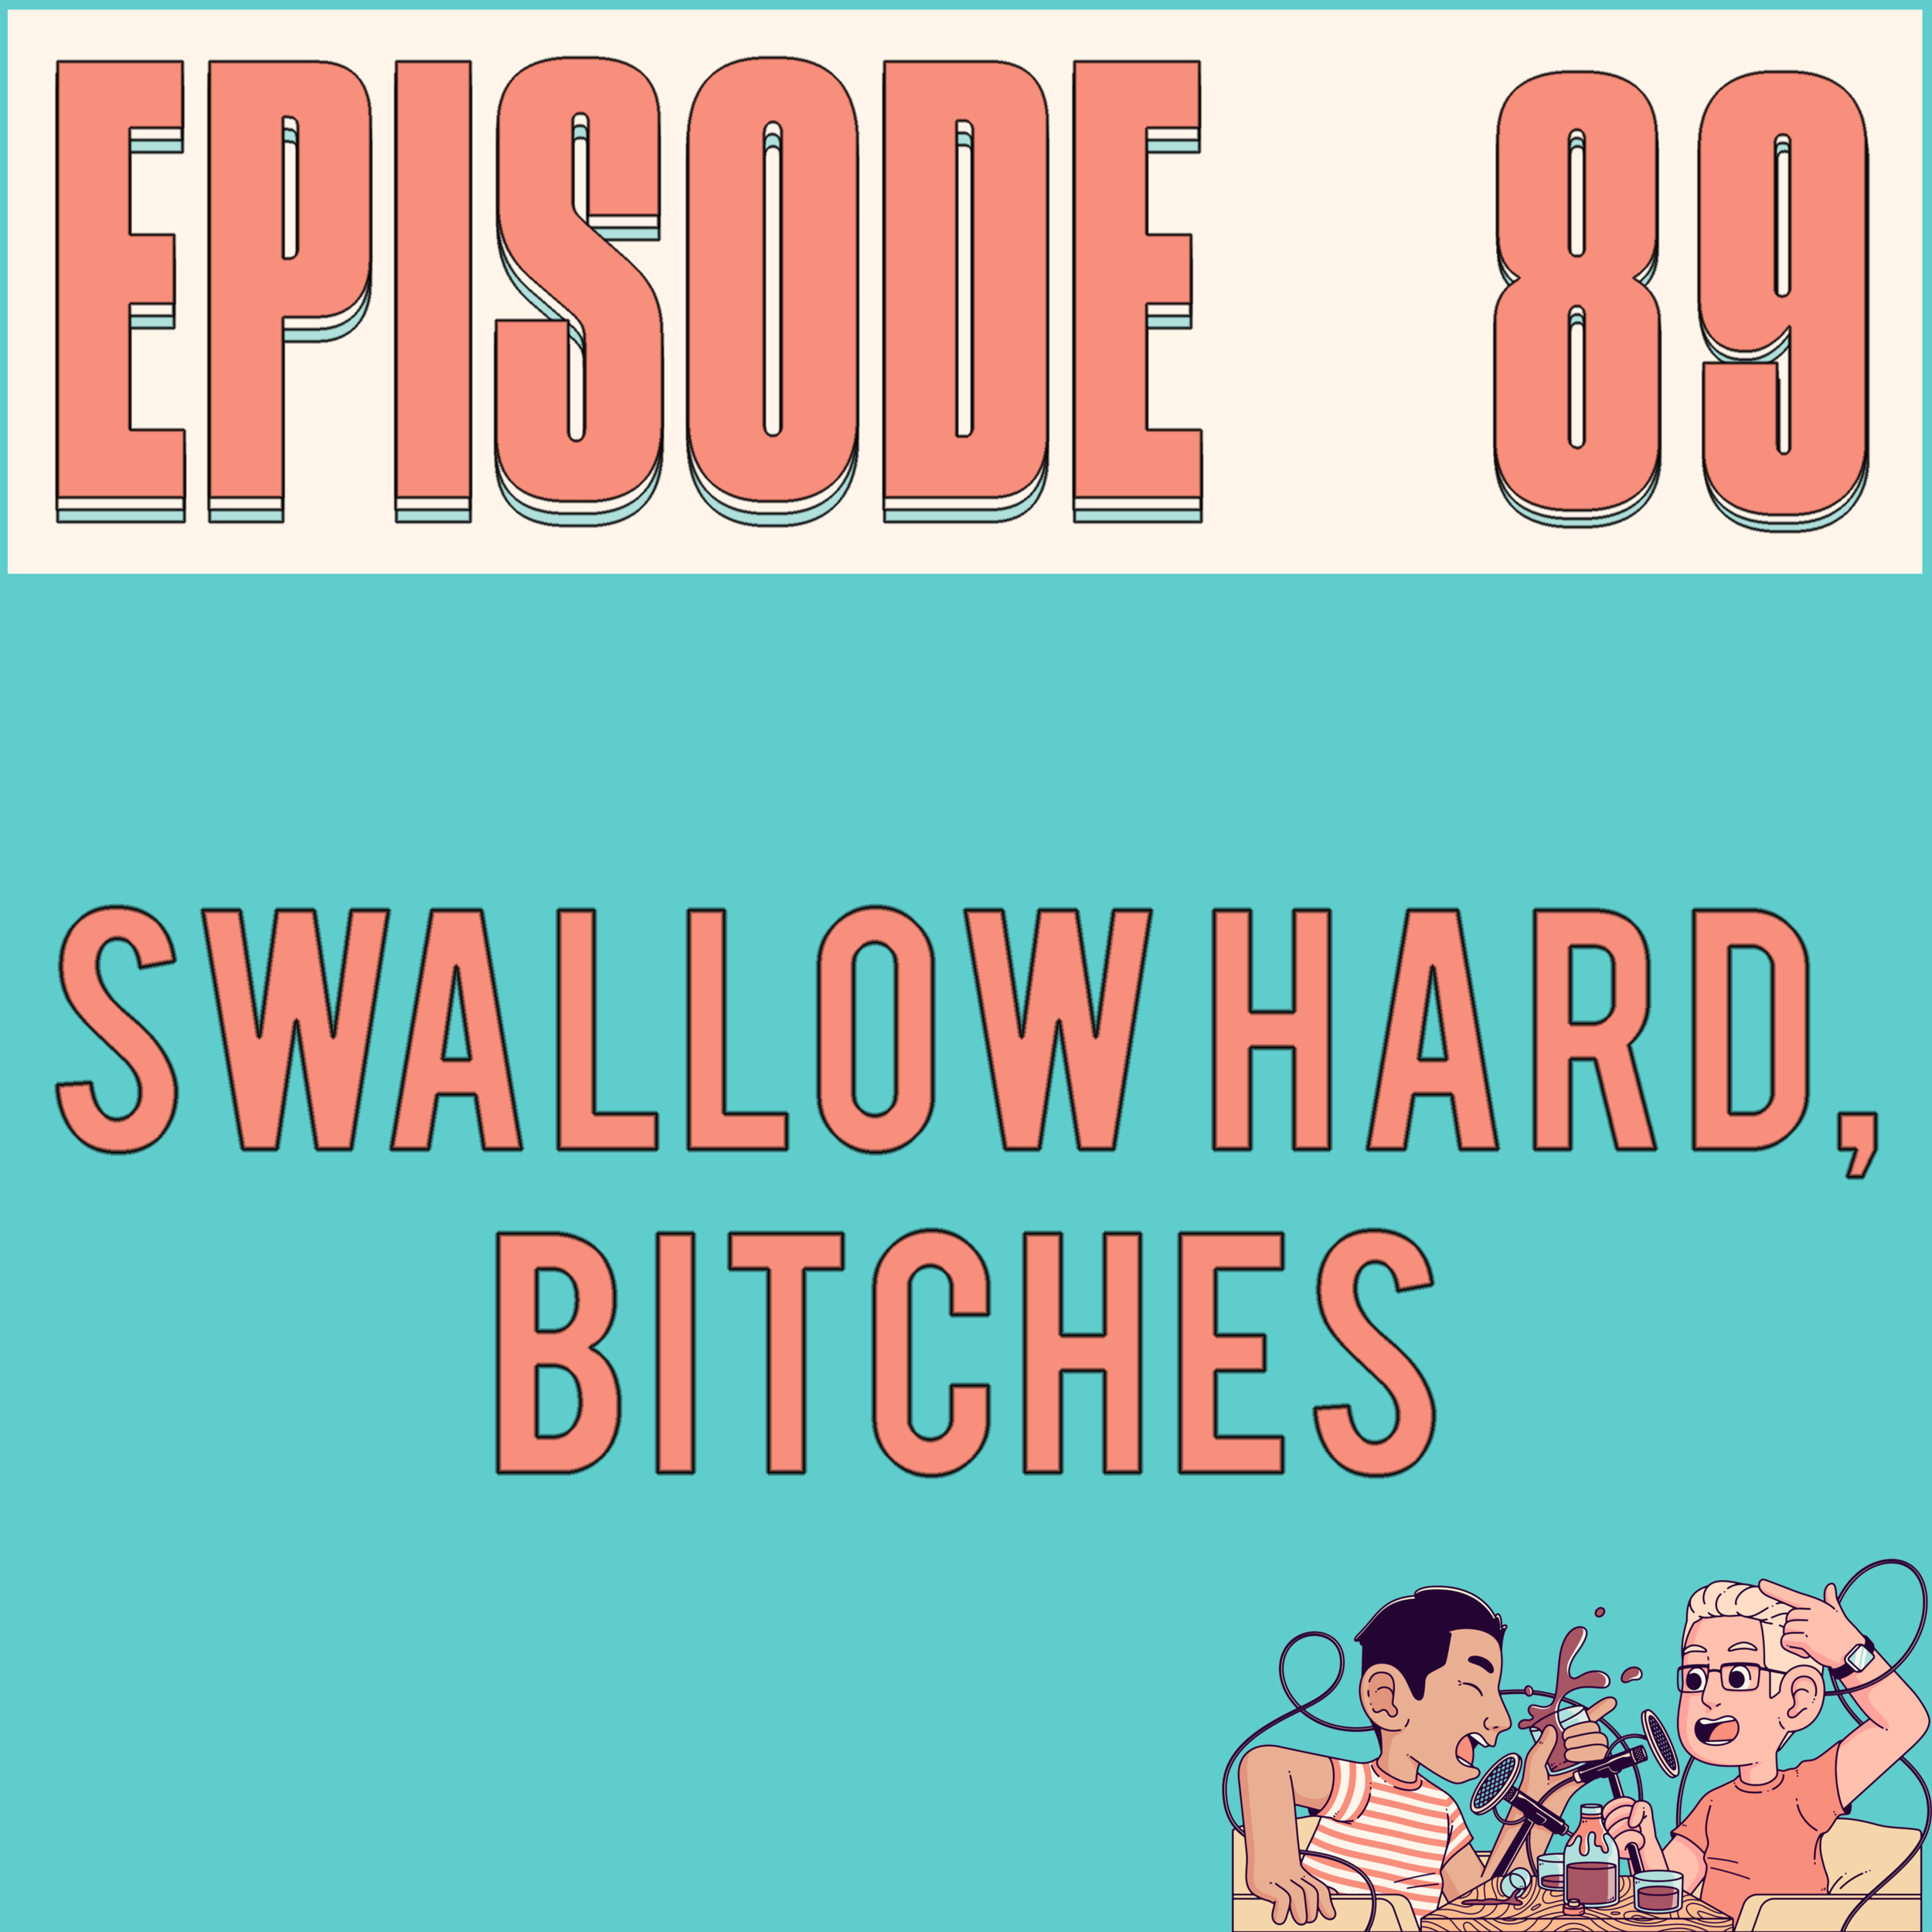 EPISODE 89 - Alex wants you to shut the hell up during movies, Stephen wants go back to the summer of '77 to FINISH WHAT THE ZODIAC KILLER STARTED, Robbie found love in music again and Justyn warns you of the dangers of certain trees. It's an IDIOTSYNCRATIC x Cinema Soapbox crossover episode!